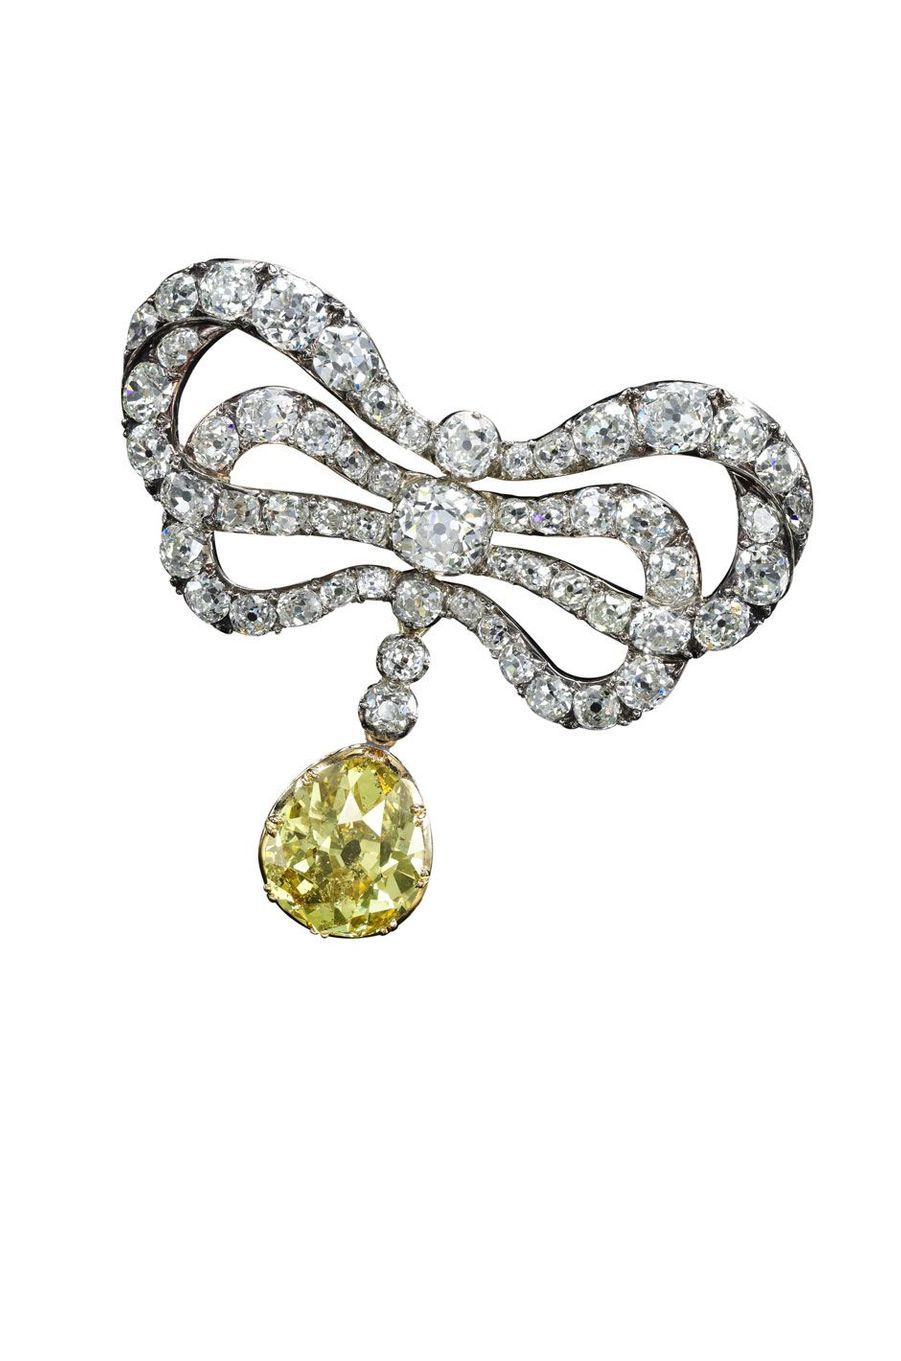 Broche en diamants. Le nœud en diamants appartenait à Marie-Antoinette, le diamant jaune a été ajouté plus tard